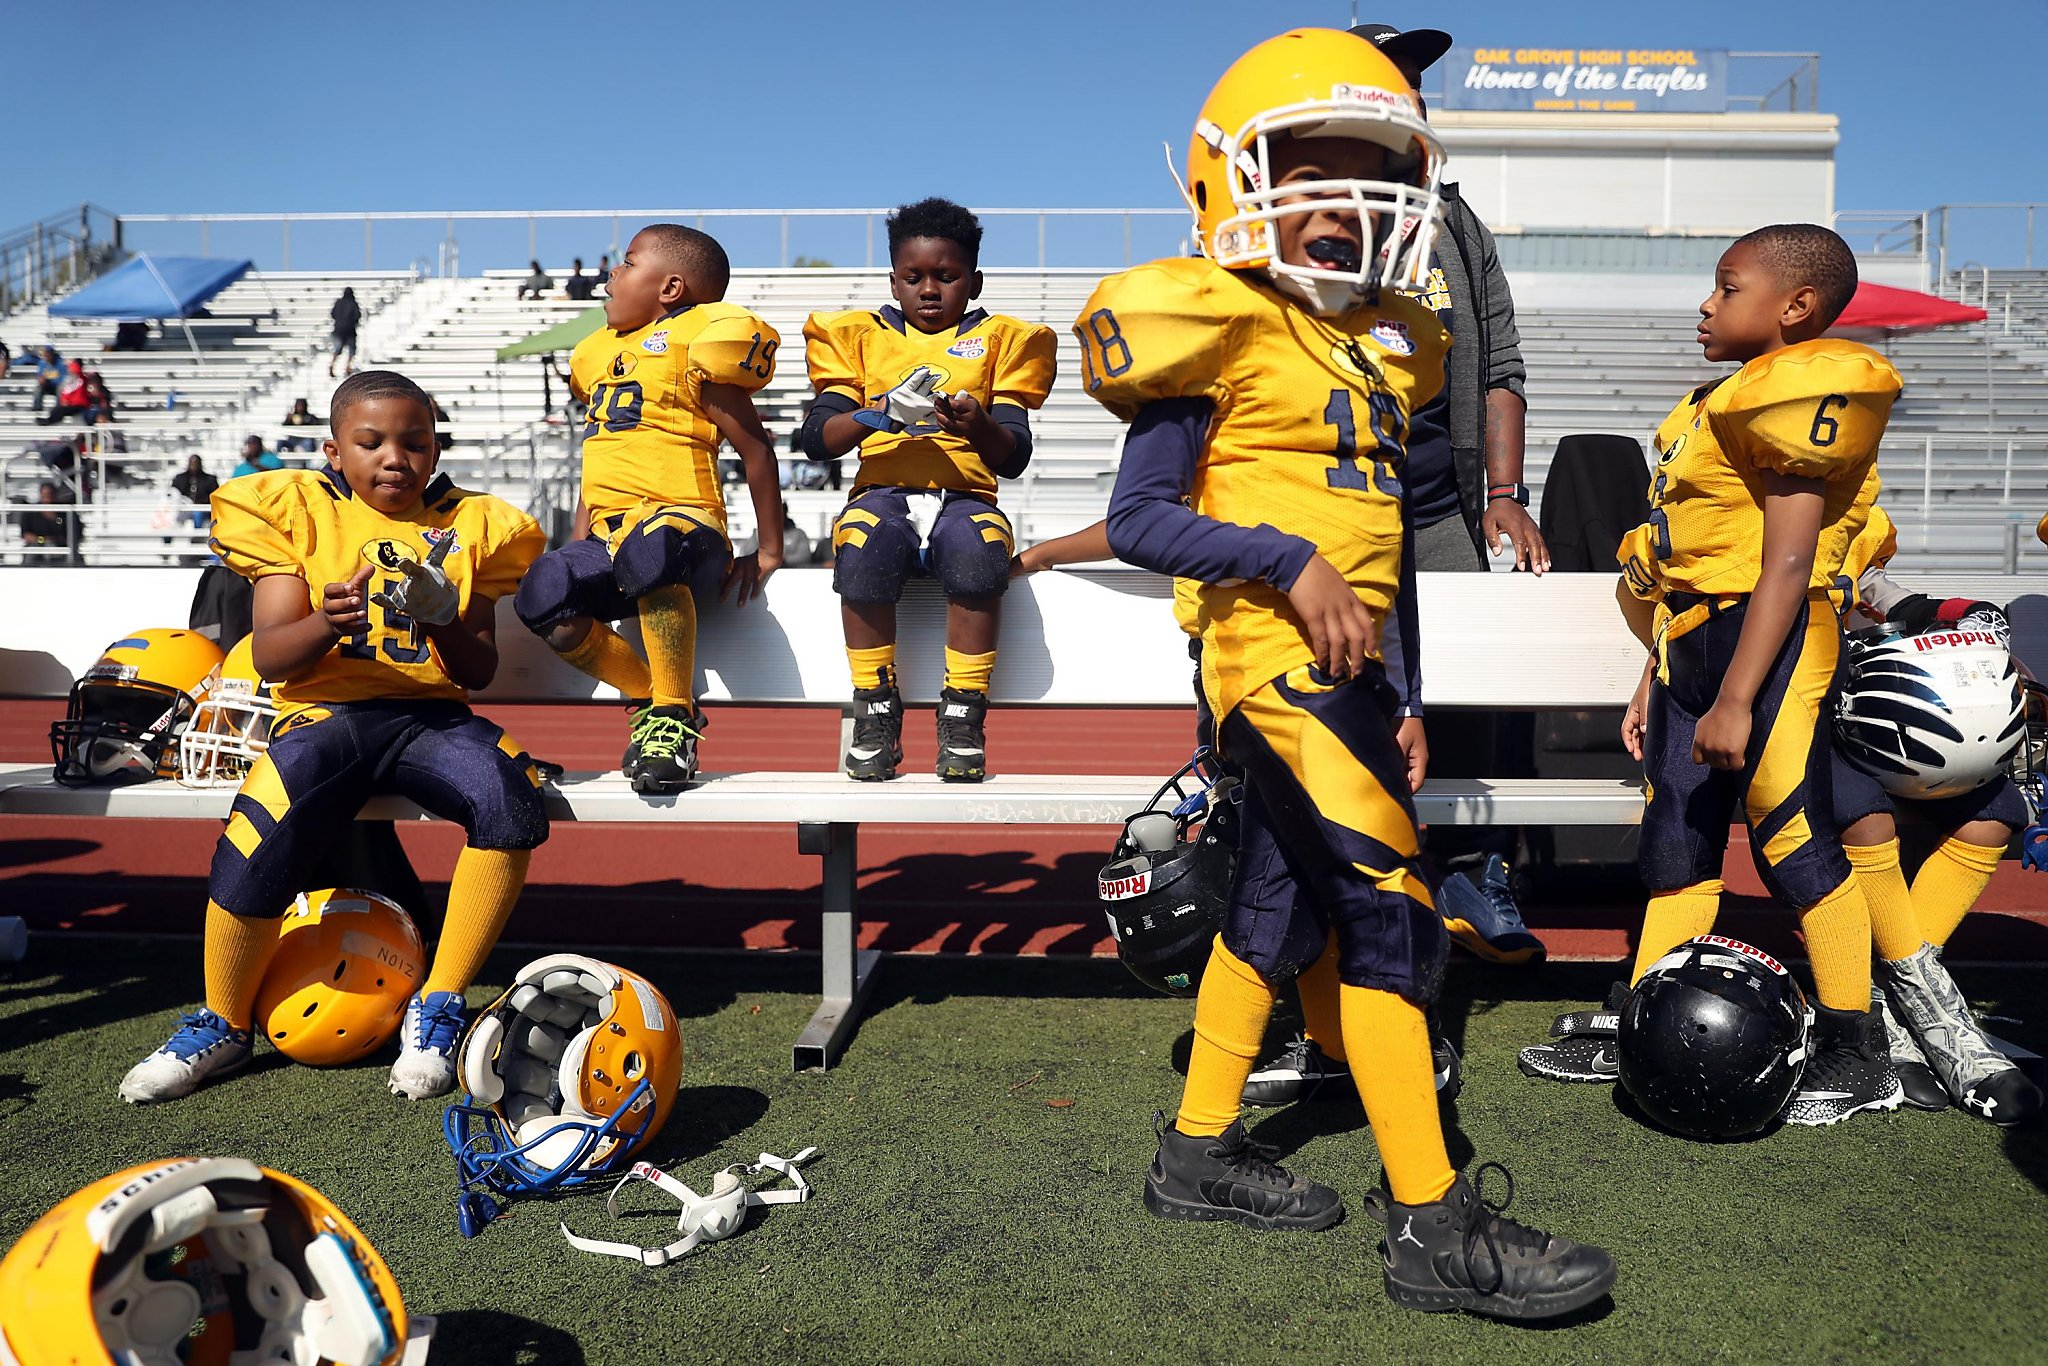 1d6c3b0d The Future of Football: Why fewer kids are playing football: A study ...